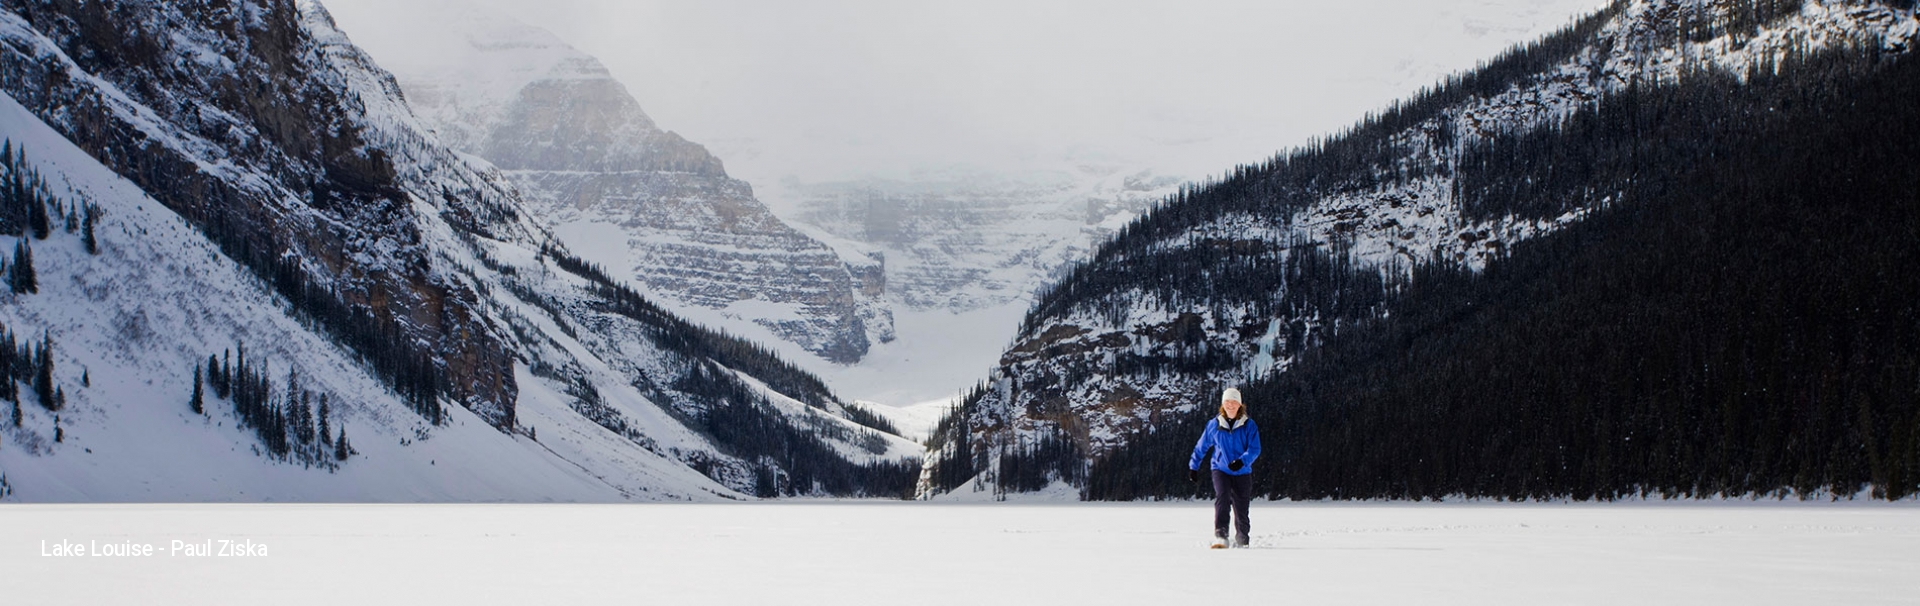 Lake Louise Tour